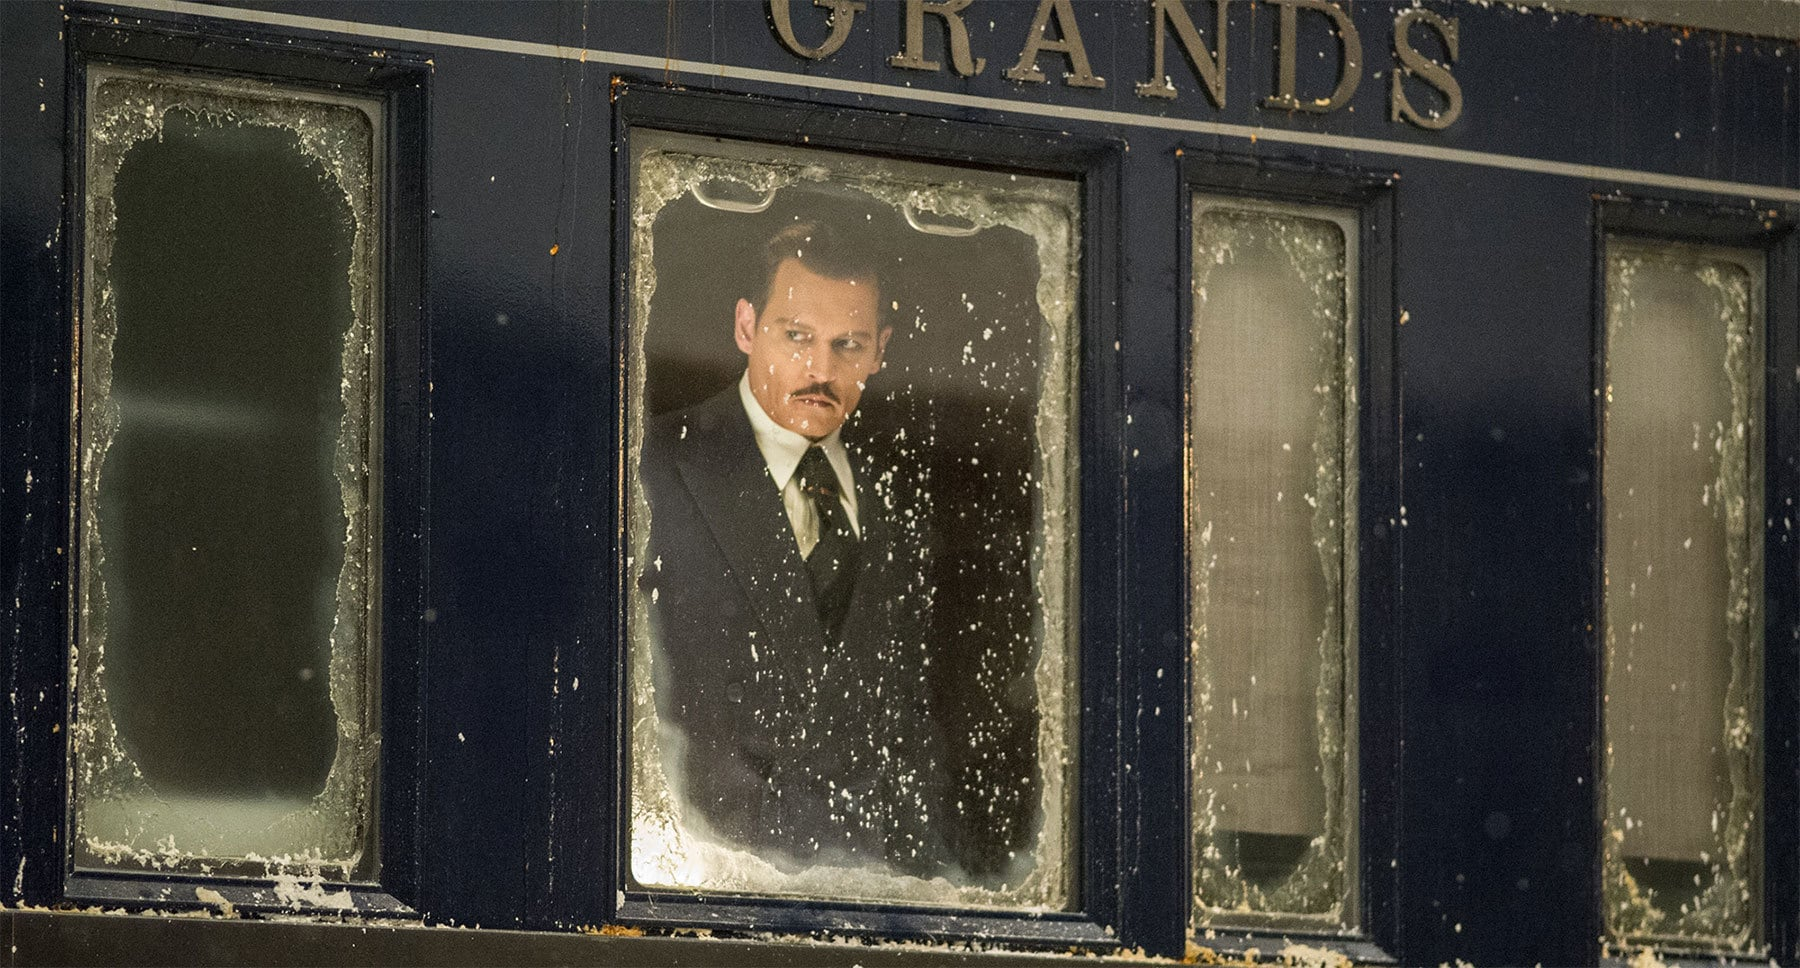 Johnny Depp (as Edward Ratchett) looking out a snow covered window on the train.